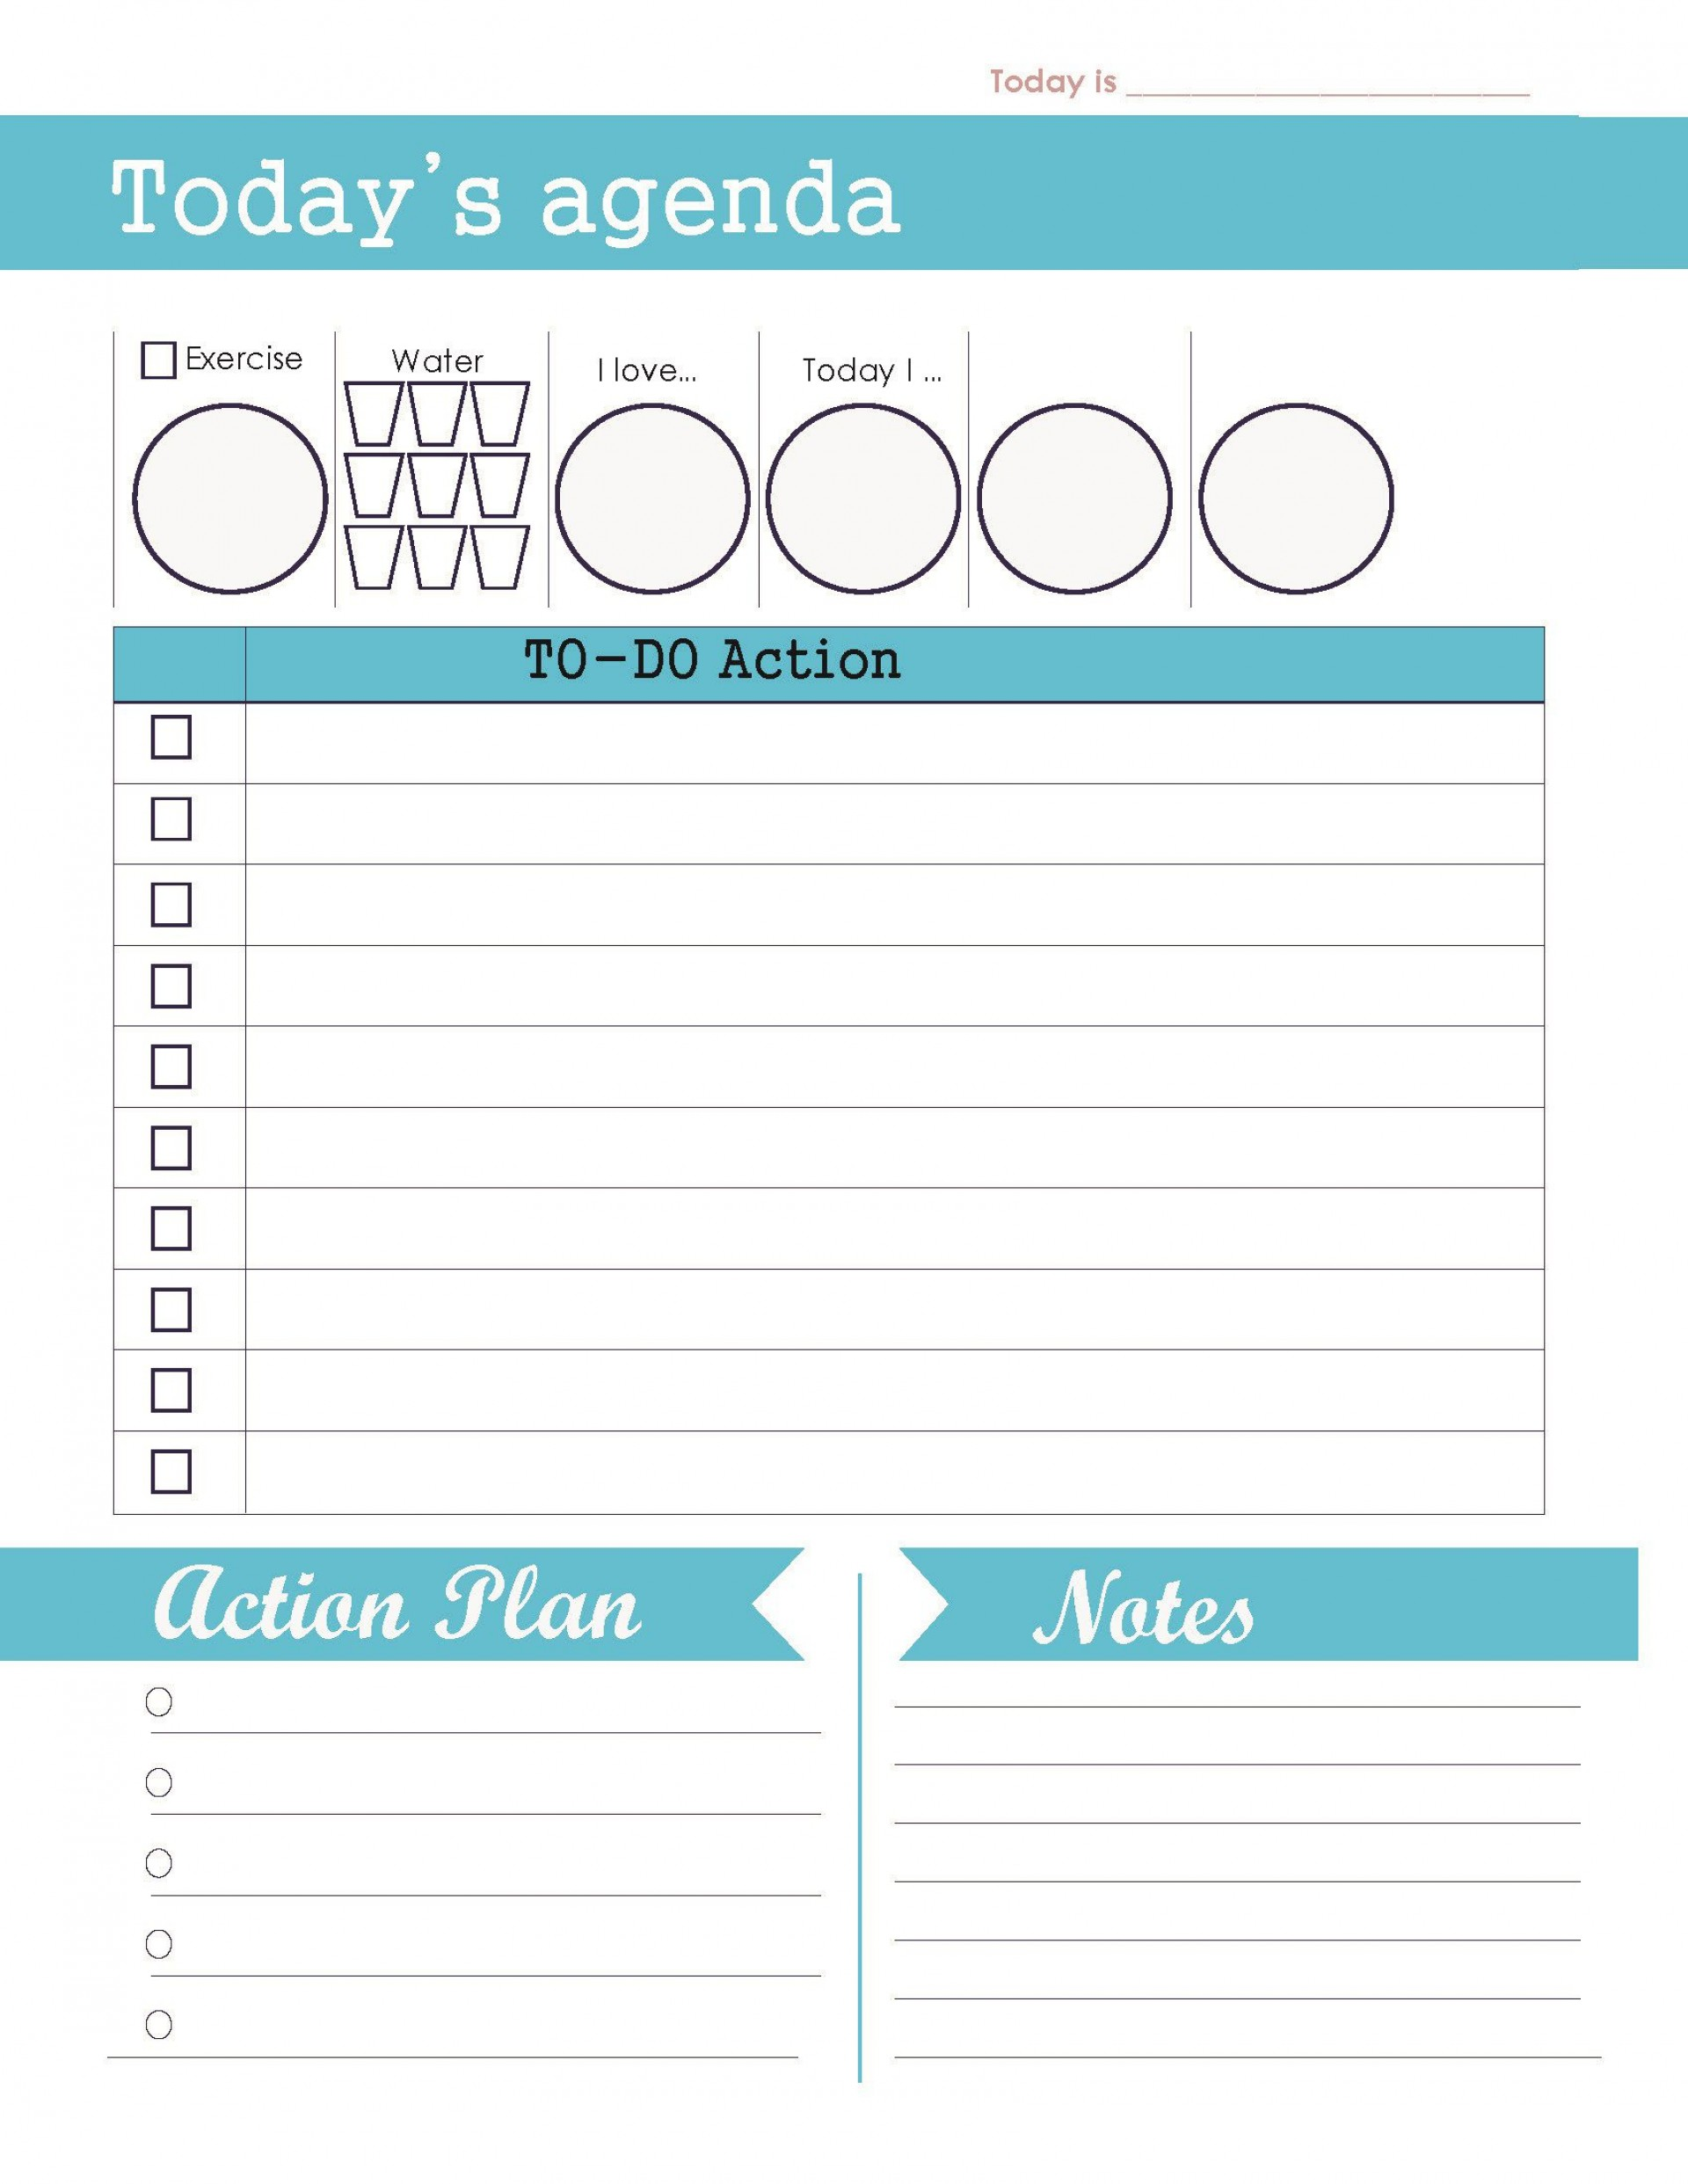 002 Frightening To Do List Template Inspiration  Templates Microsoft Excel Printable Free1920